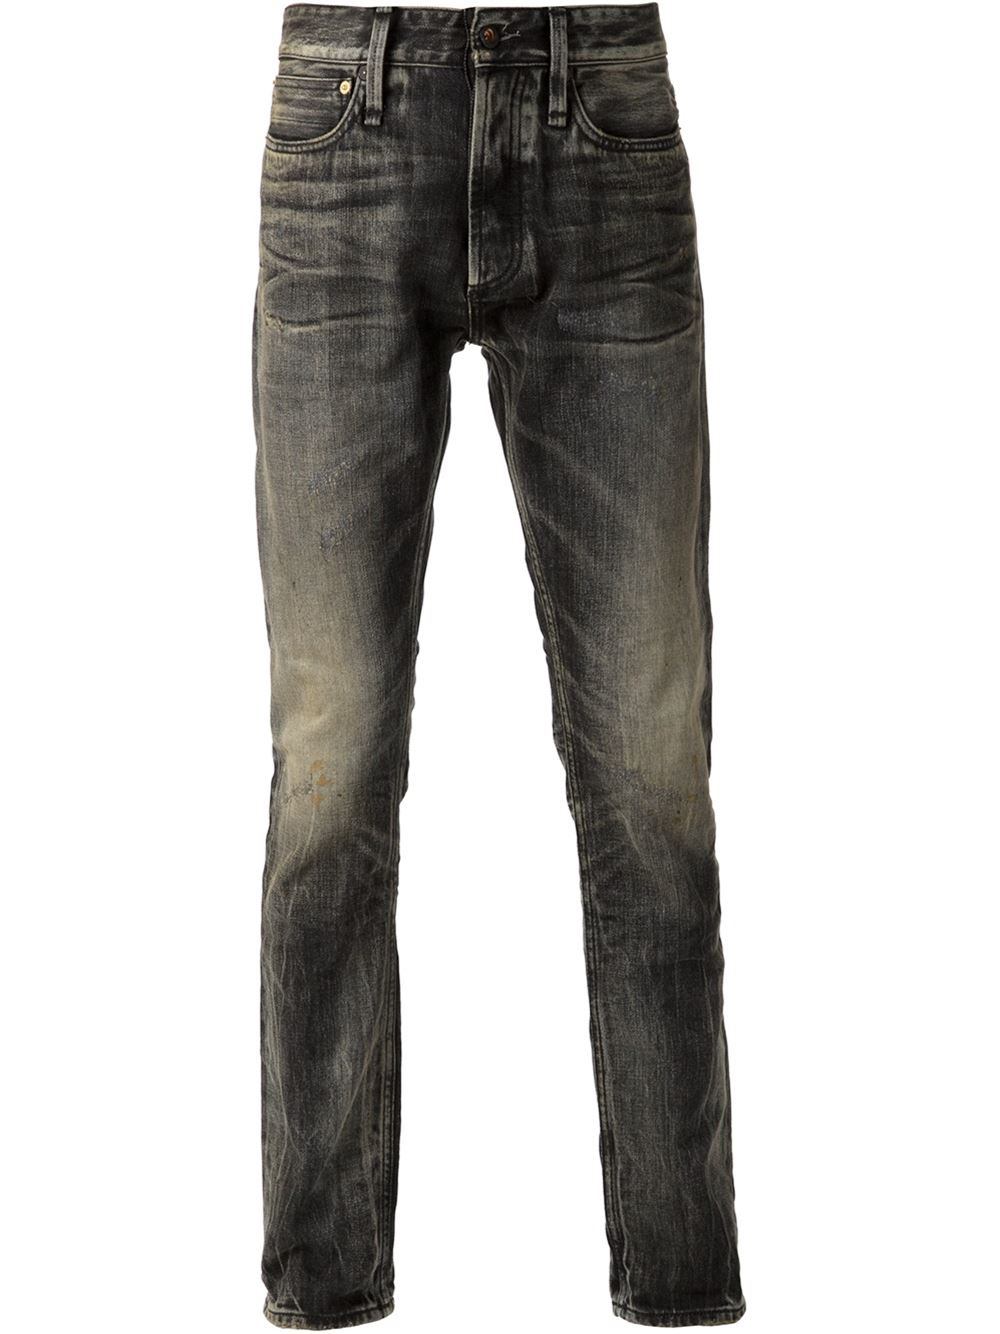 Black Faded Jeans Mens - Jeans Am